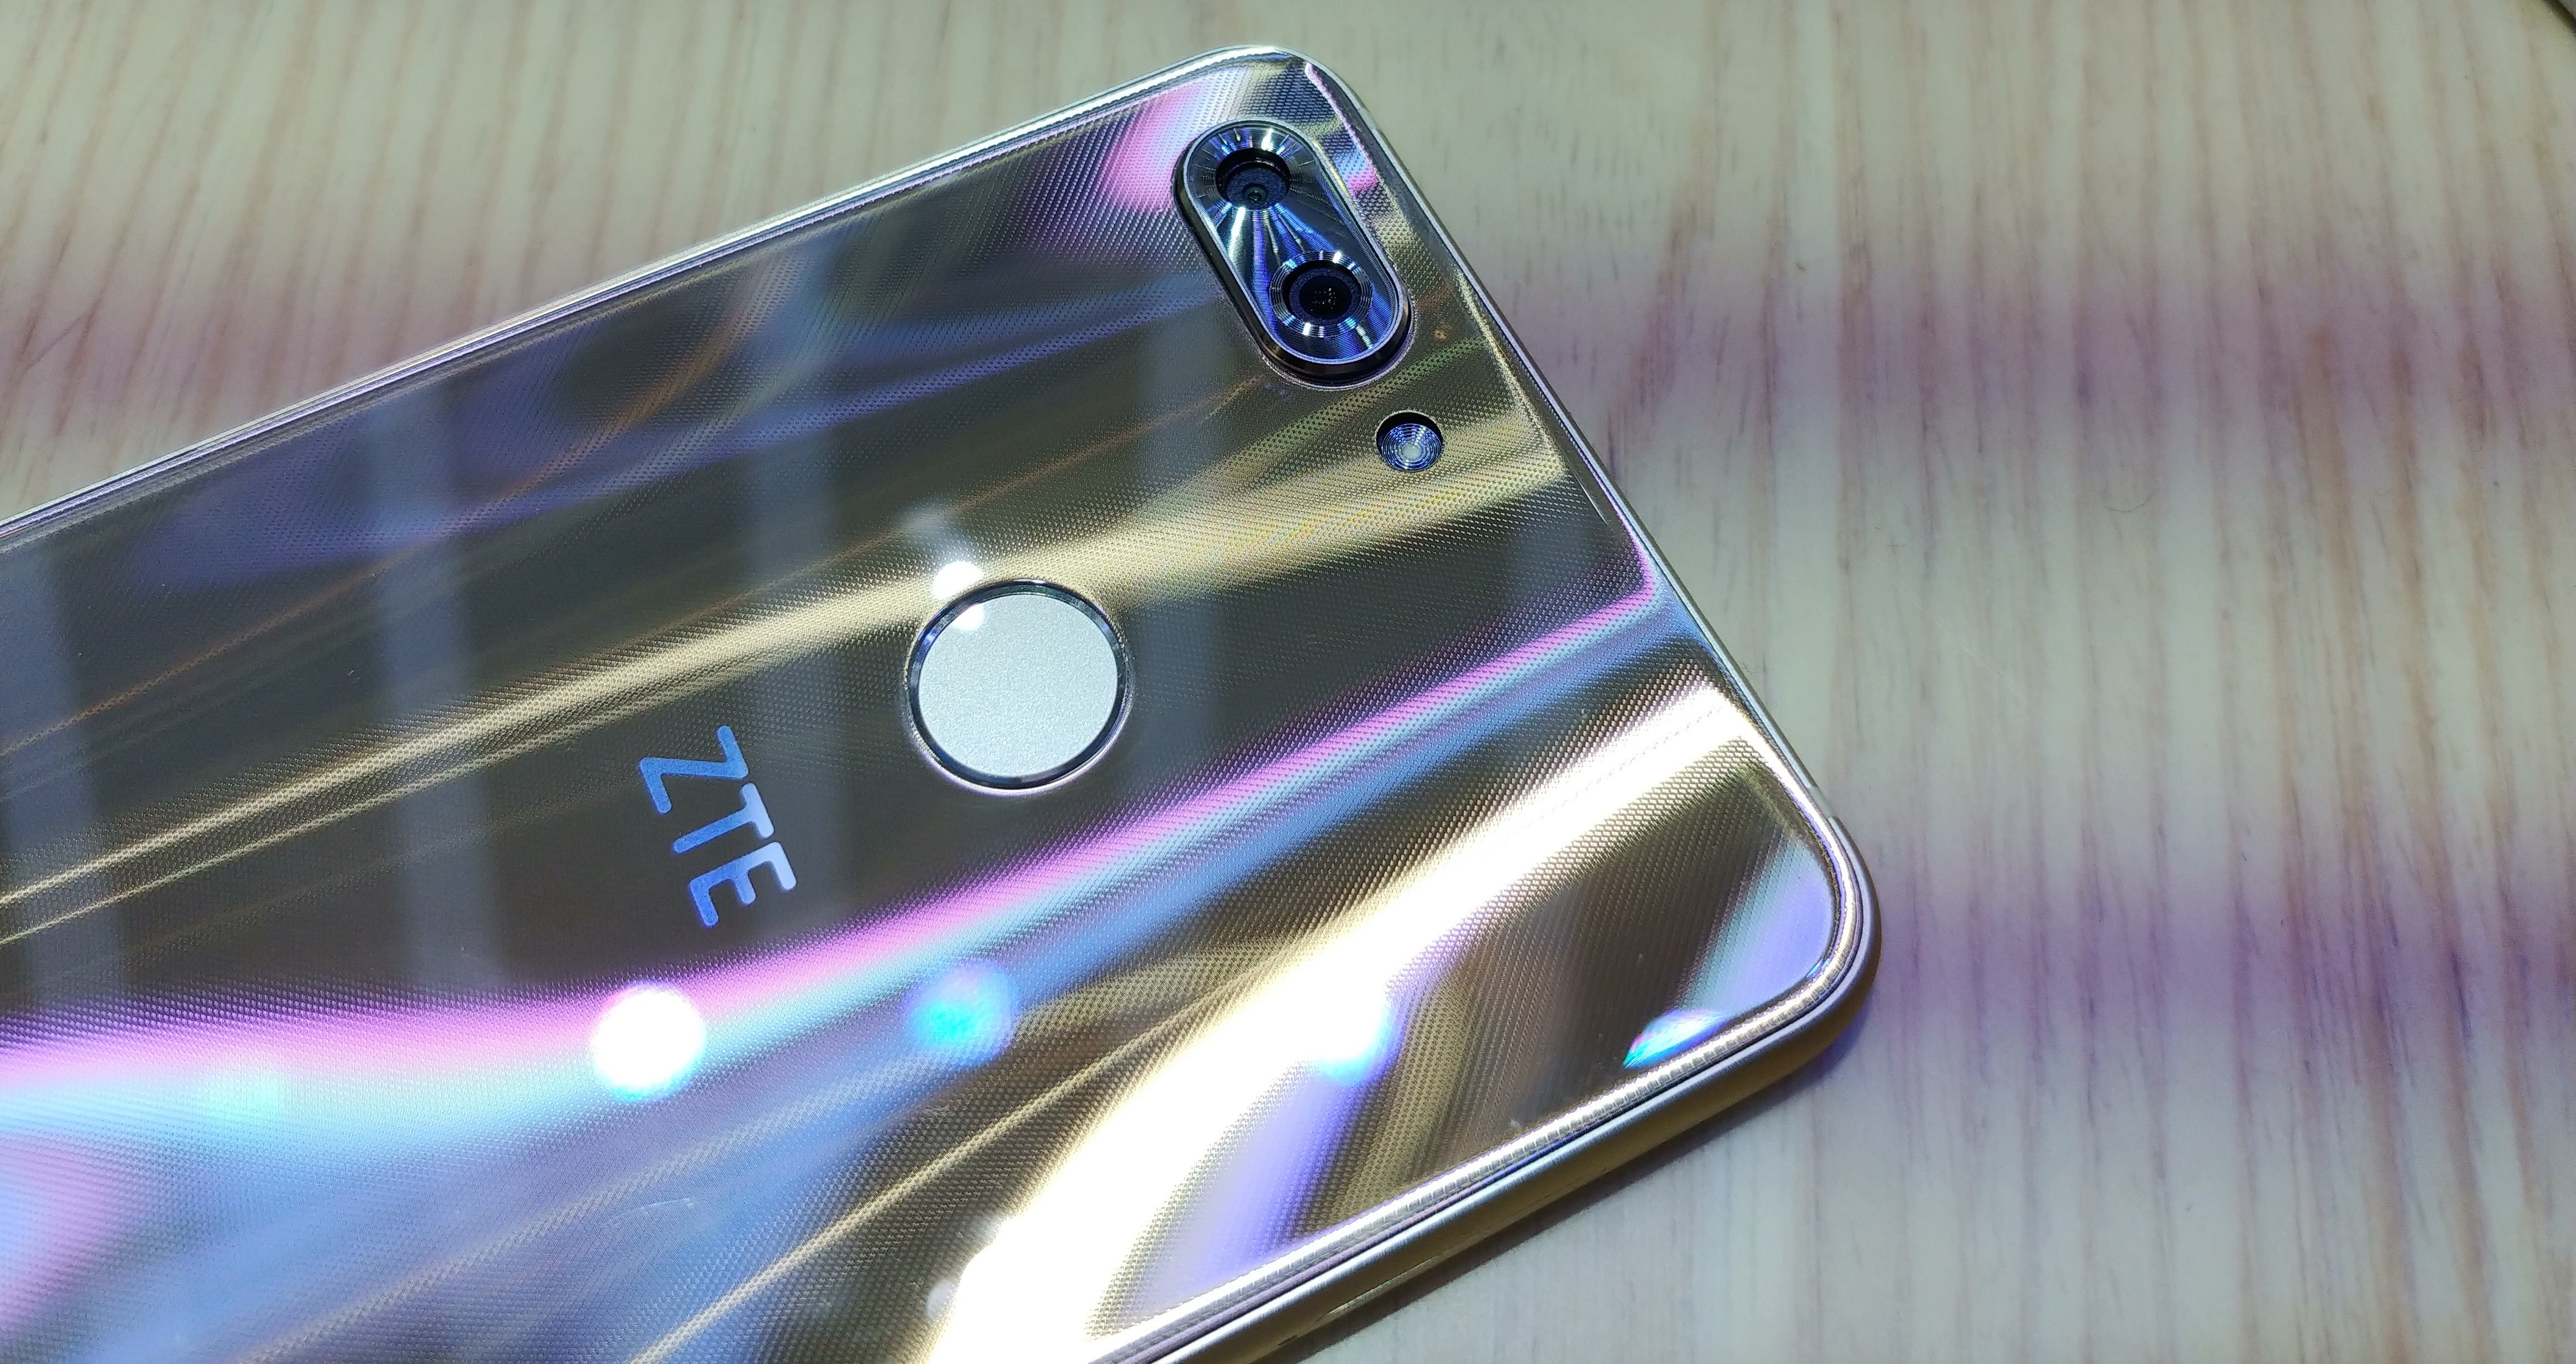 ZTE Blade V9 is a mid-range smartphone with a flagship design